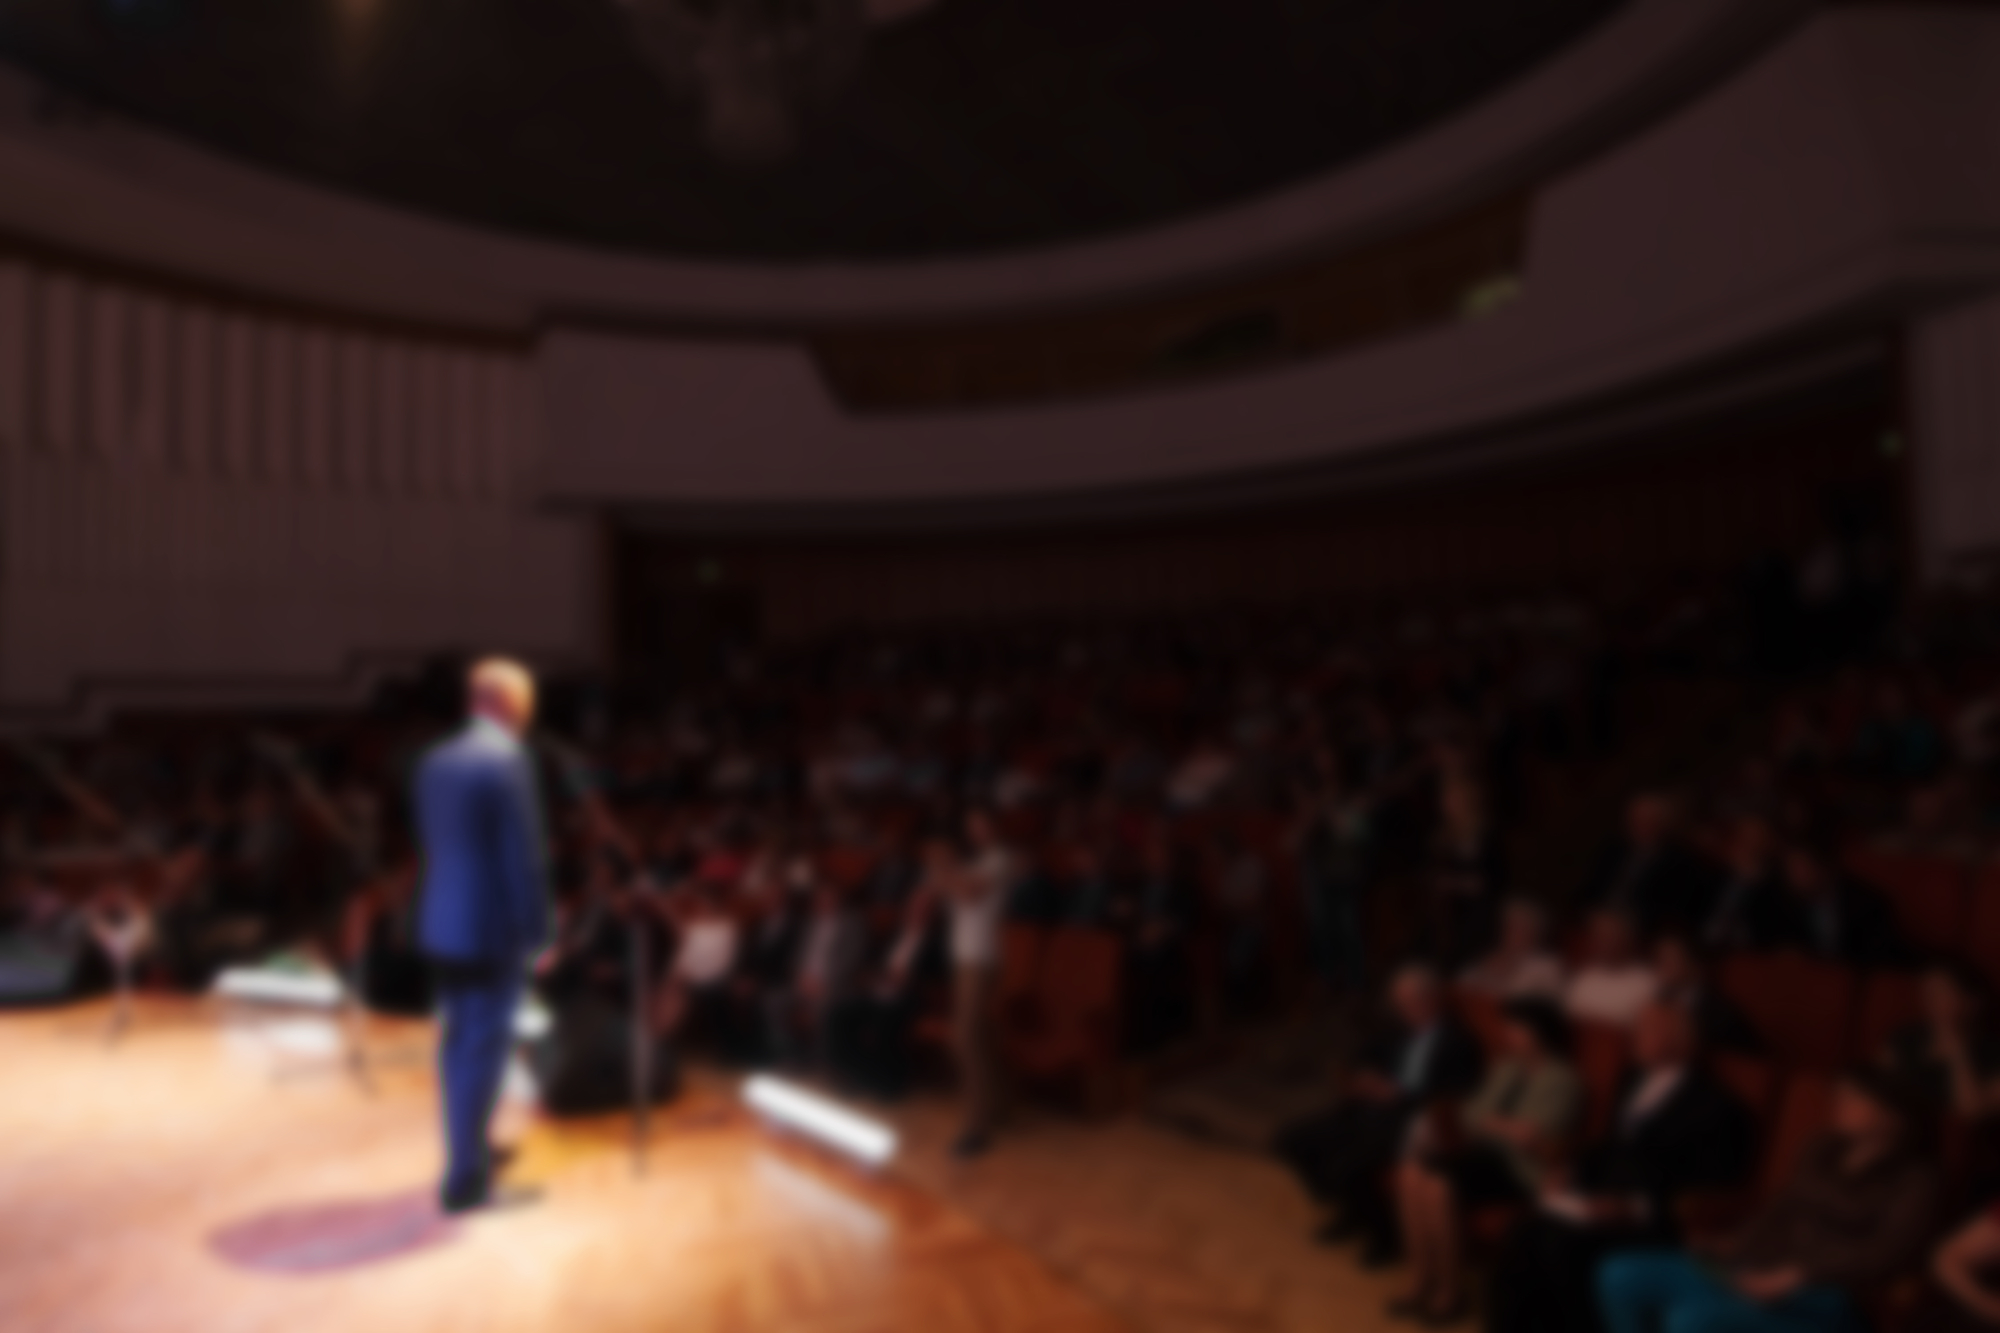 Frisbee Rob's Top 5 Tips for Public Speaking